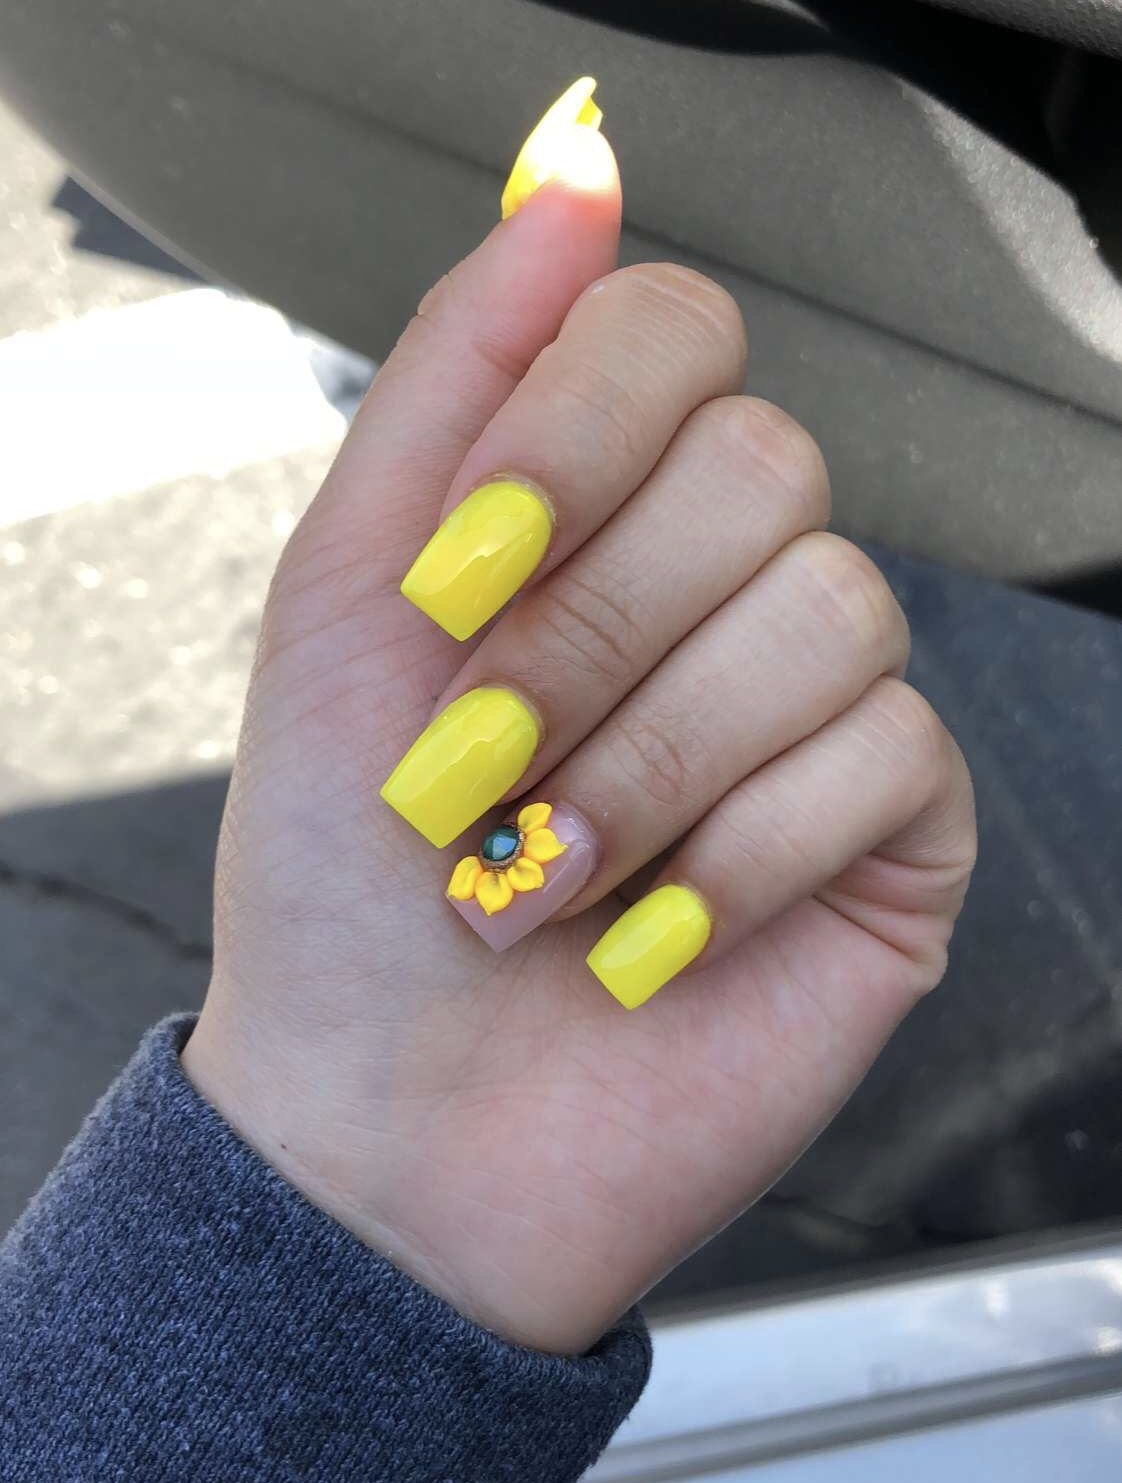 yellow sunflower nails✨ instagram: @trina_nguyen - Yellow Sunflower Nails✨ Instagram: @trina_nguyen Nails